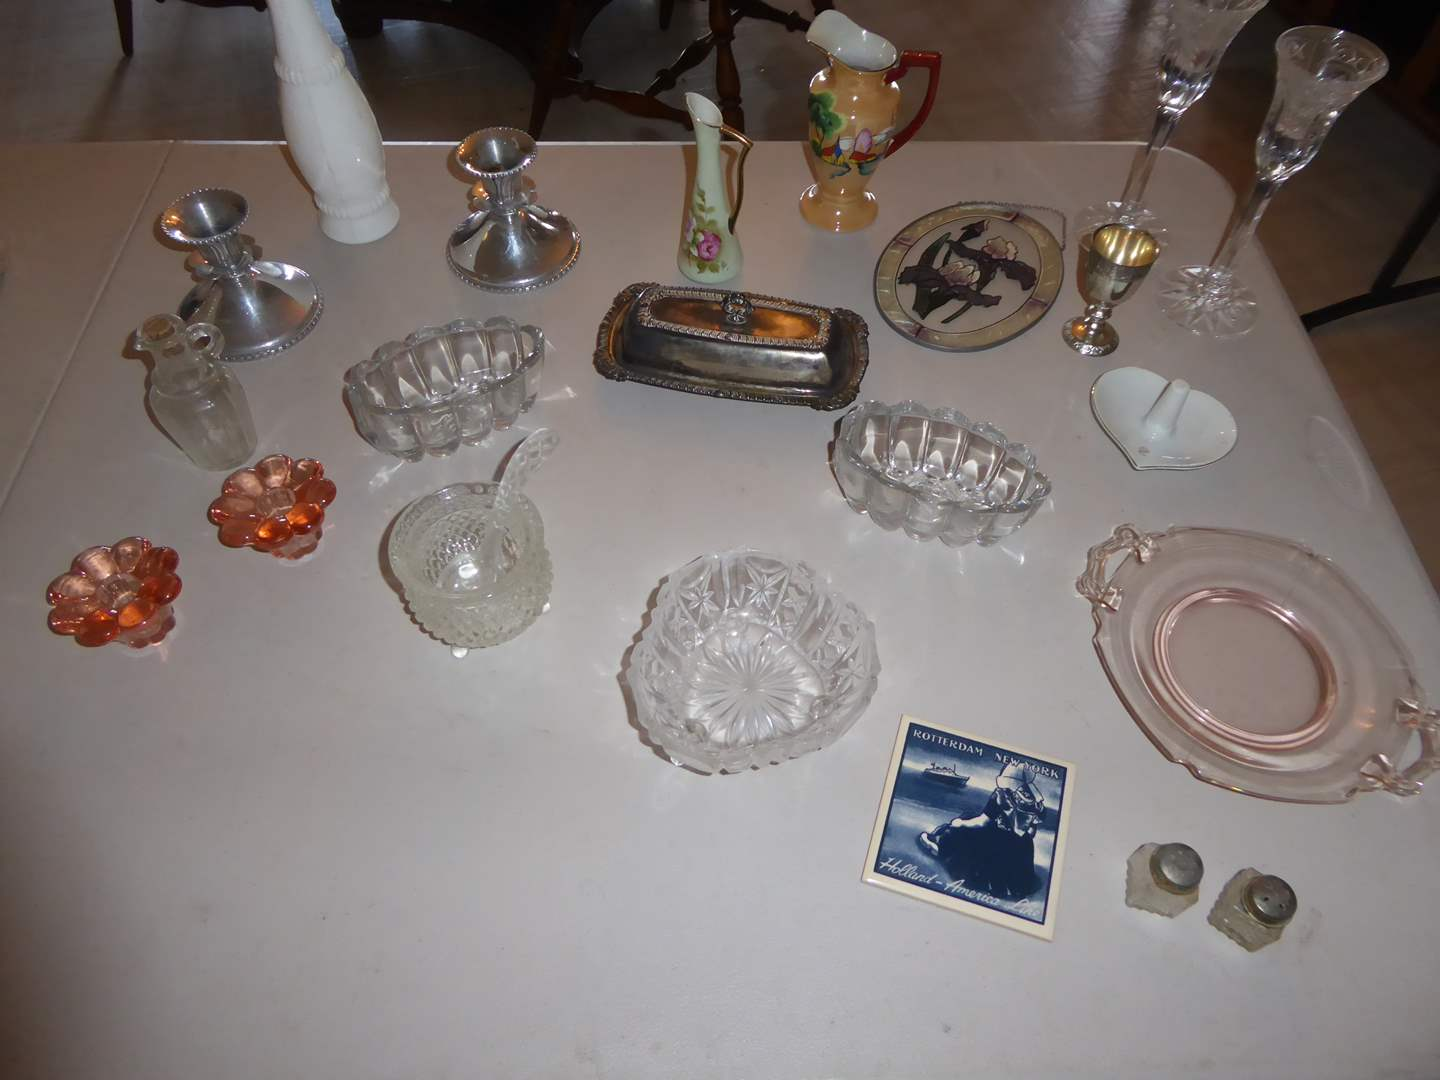 Lot # 11 - Silver-plated Butter Dish, Pewter Candle Holders & More  (main image)